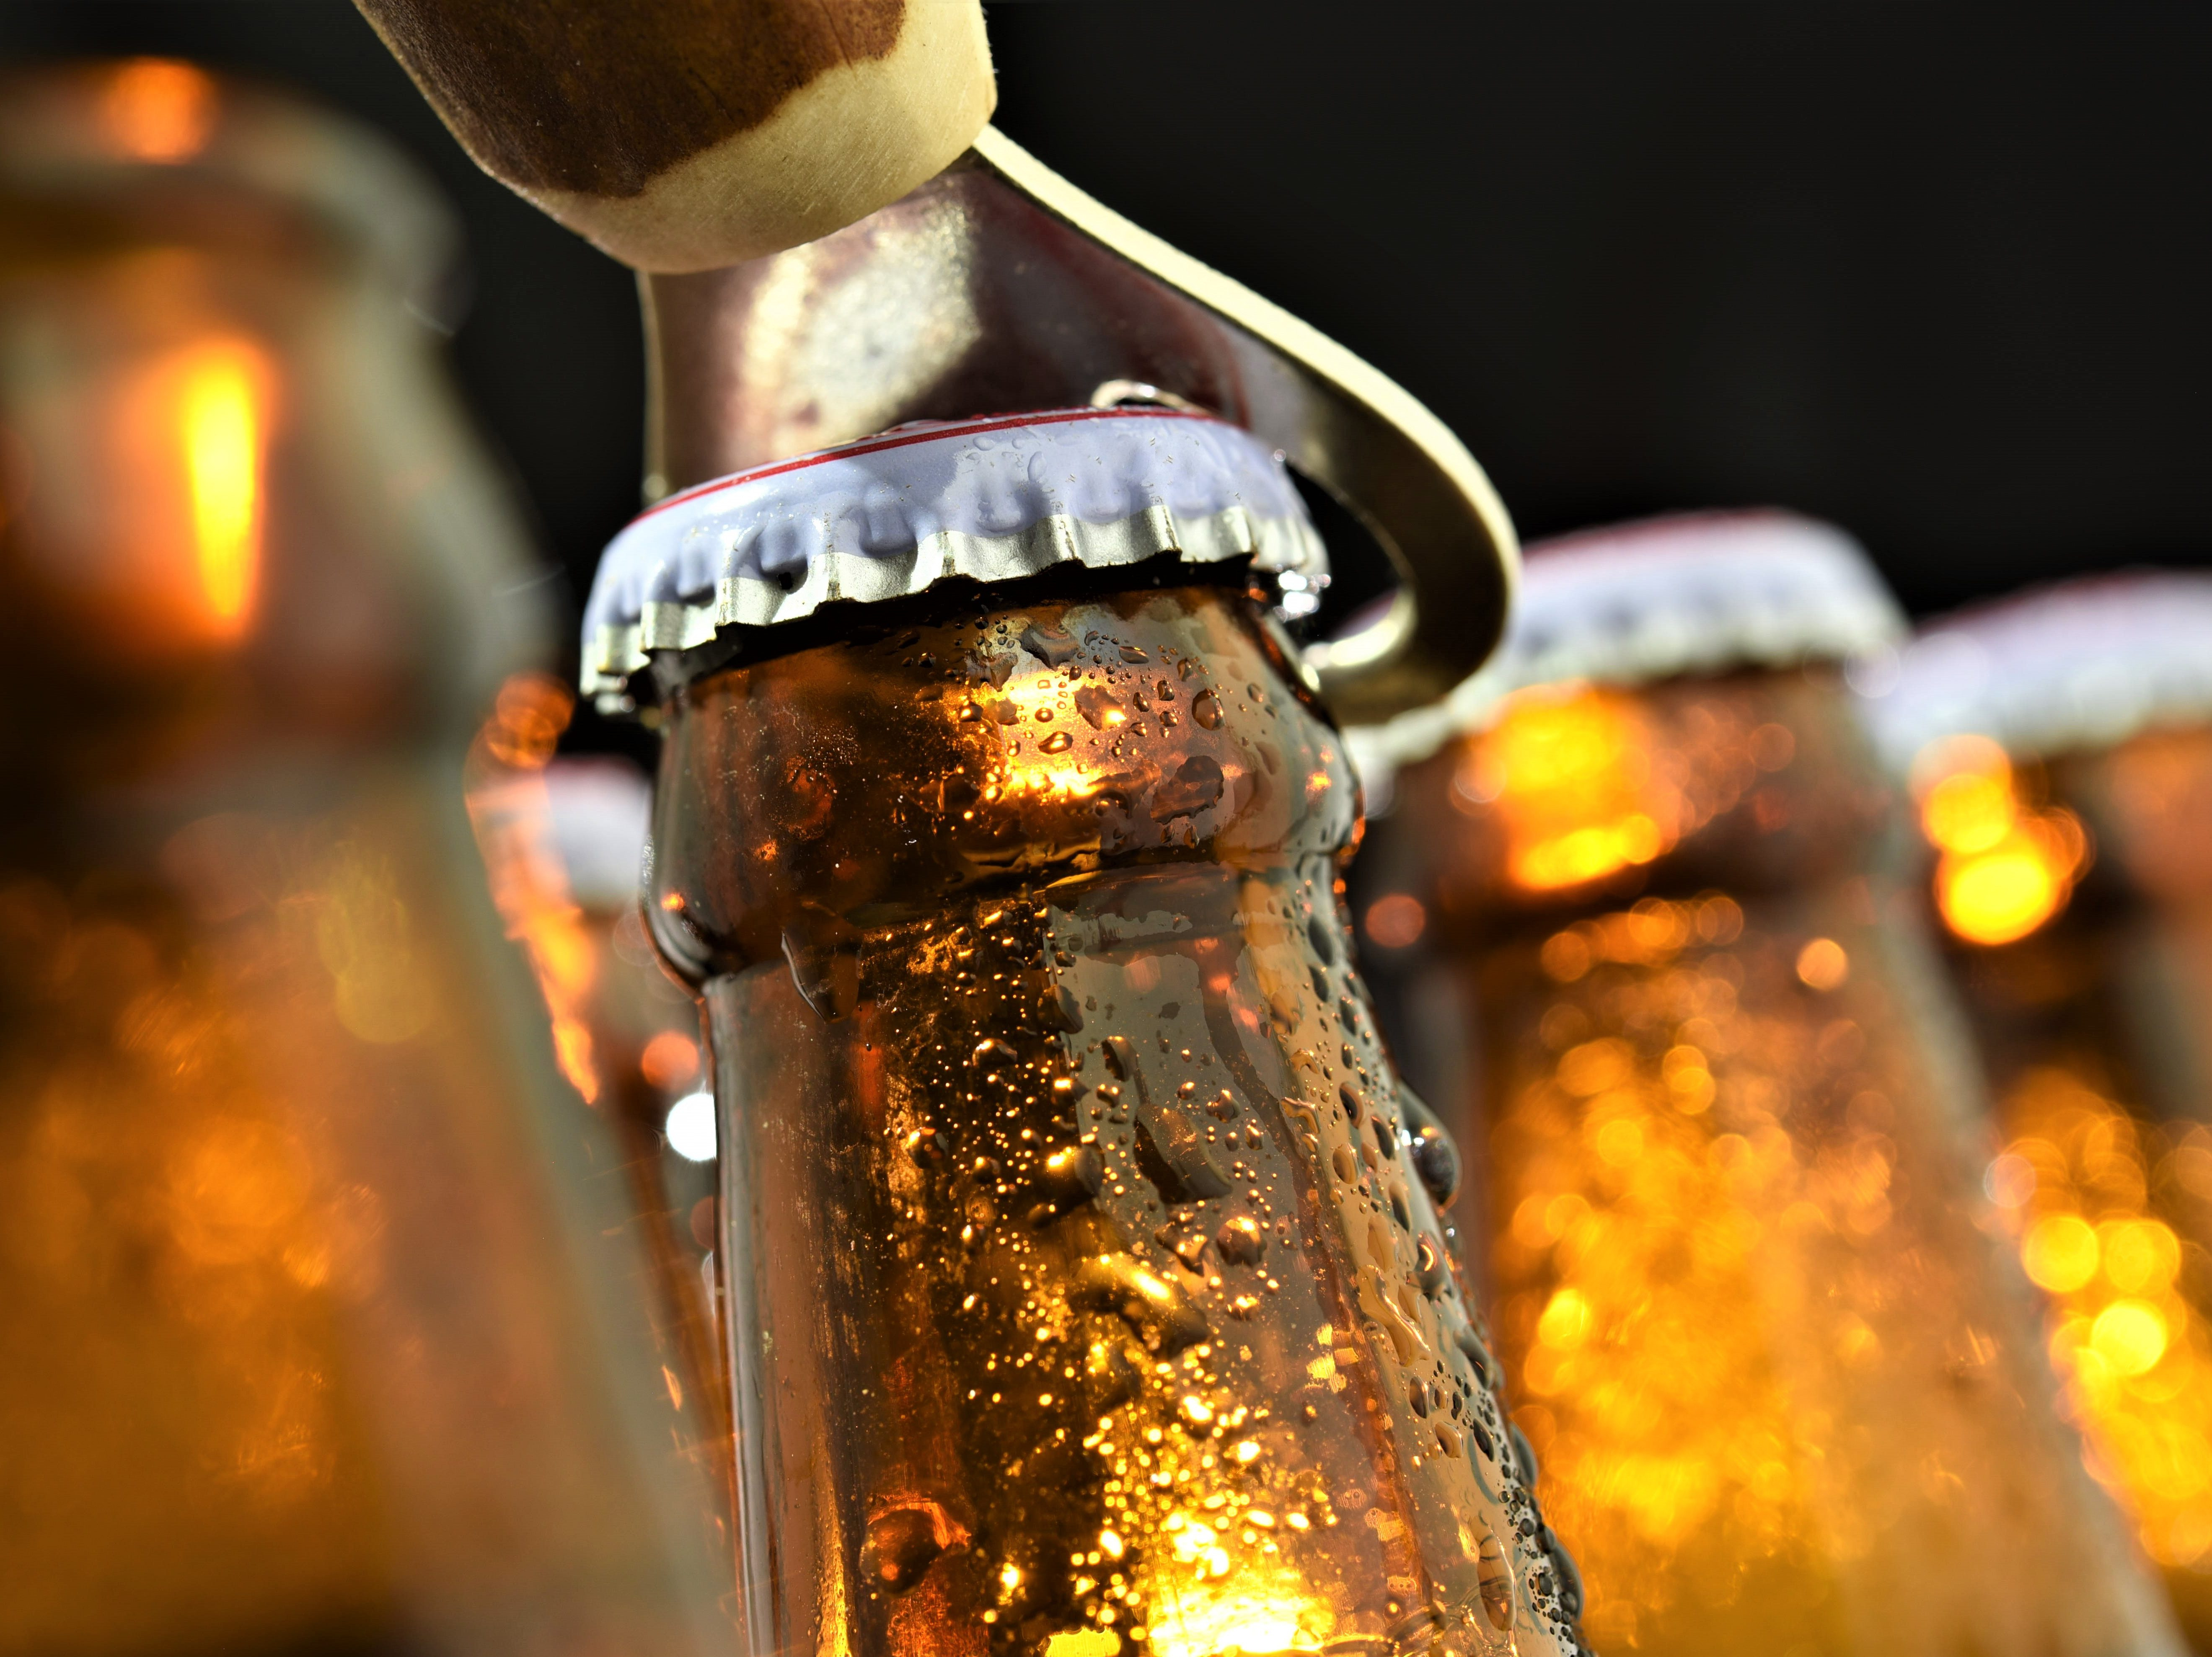 Breweries running out of bottles as COVID-19 prompts increased sales